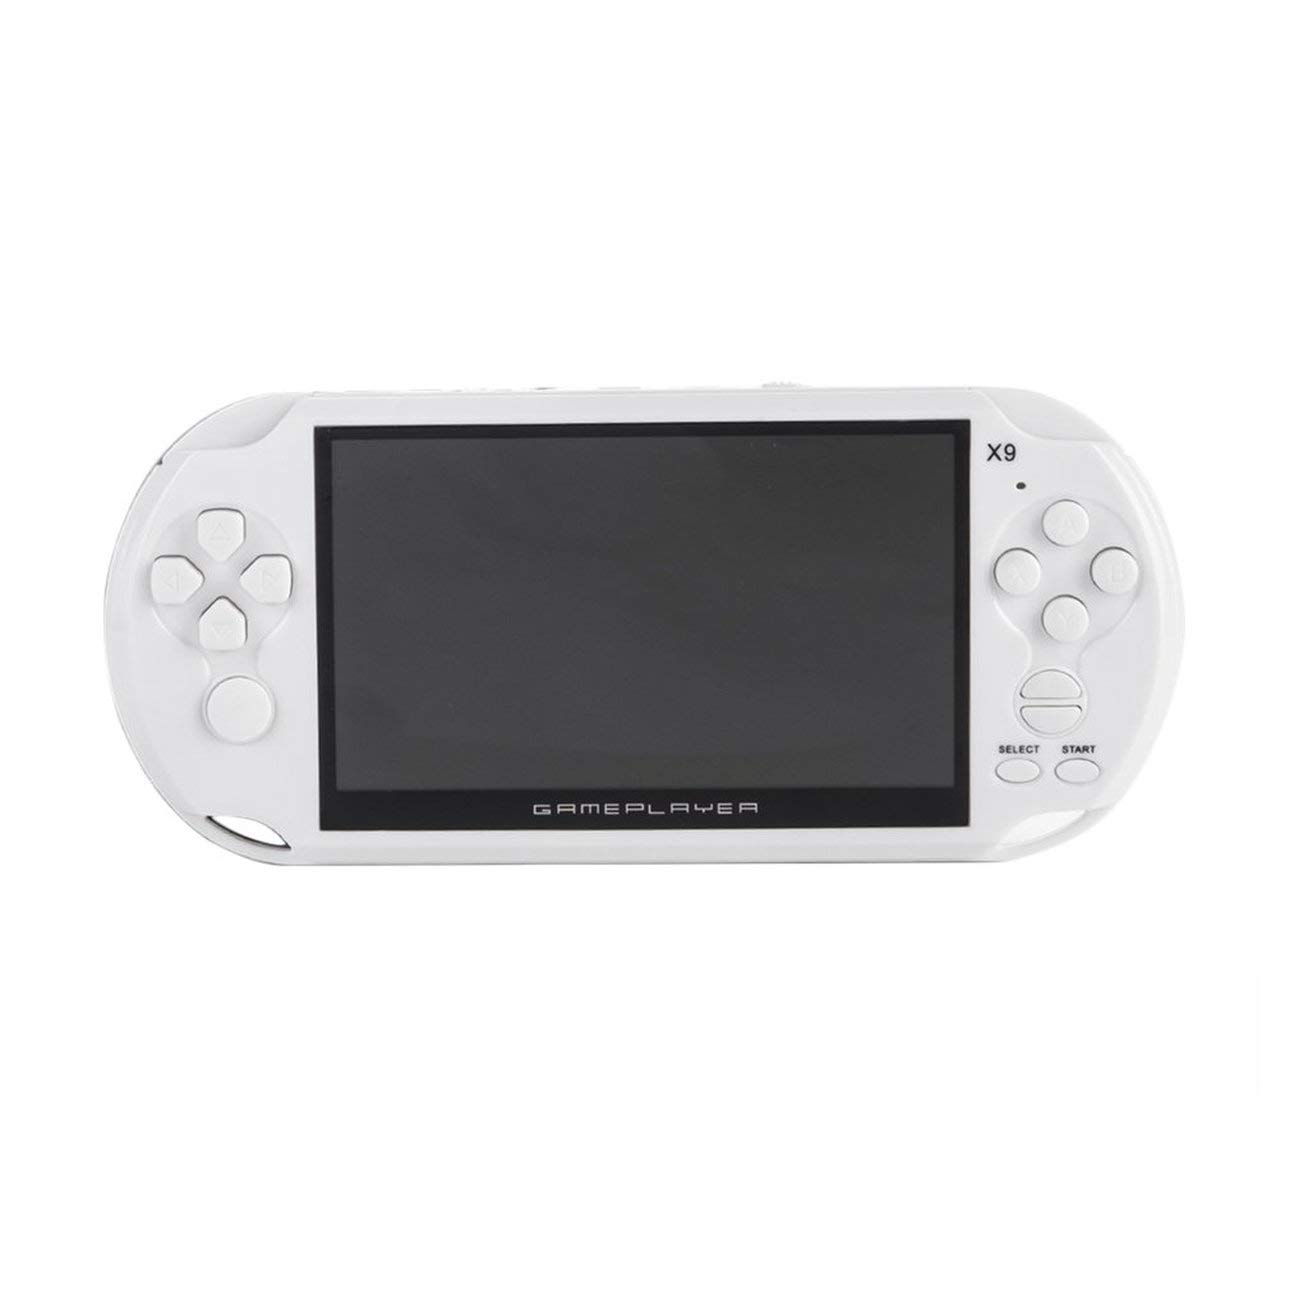 Smartlove1P Portable Size 5.0 Inch Large Screen 8GB Game Console Handheld Game Player MP3 Player Gamepad with Classic Games by Smartlove1P (Image #3)